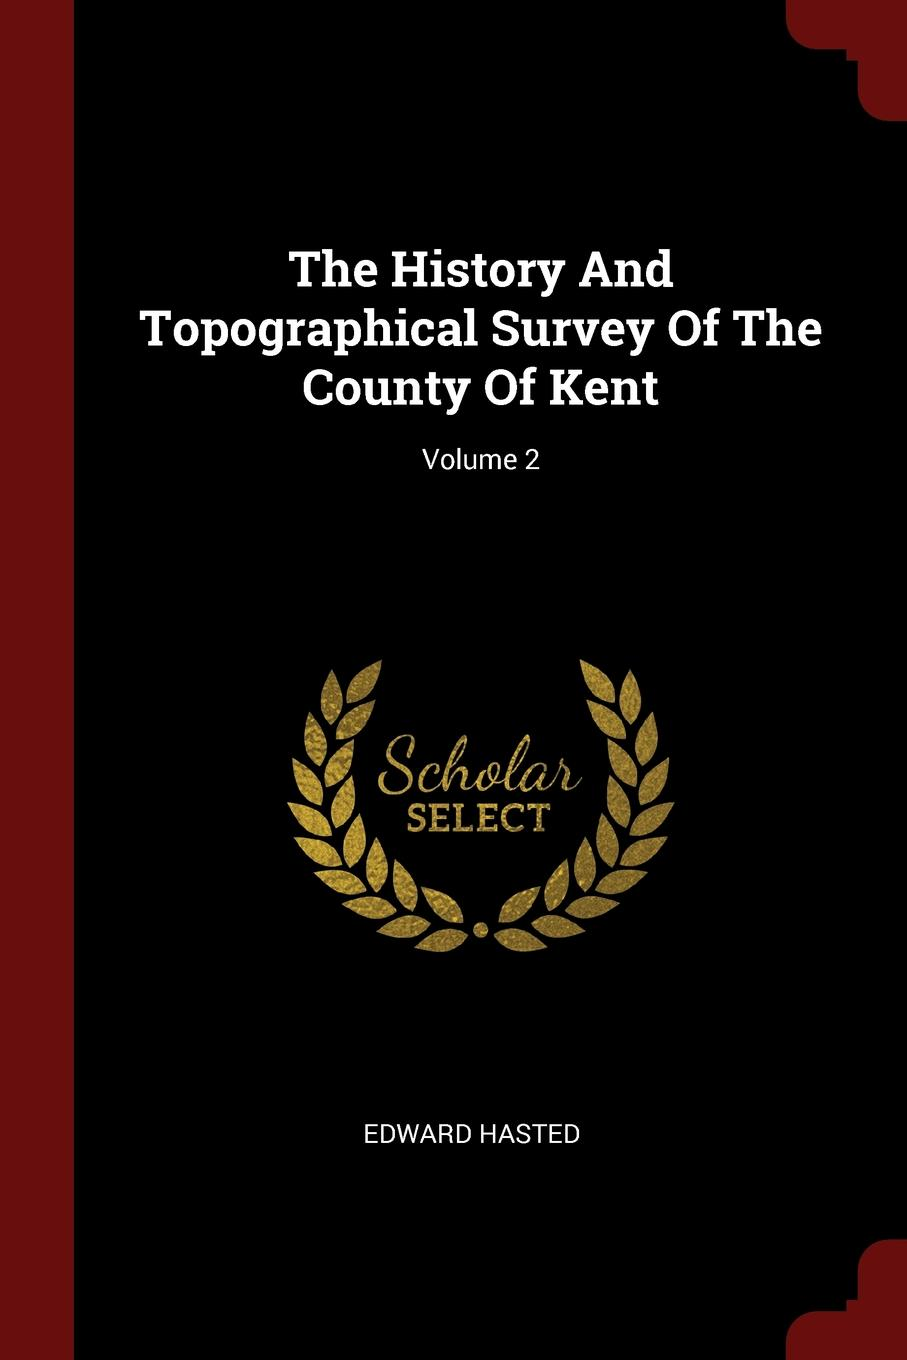 Edward Hasted The History And Topographical Survey Of The County Of Kent; Volume 2 edward hasted the history and topographical survey of the county of kent volume xii